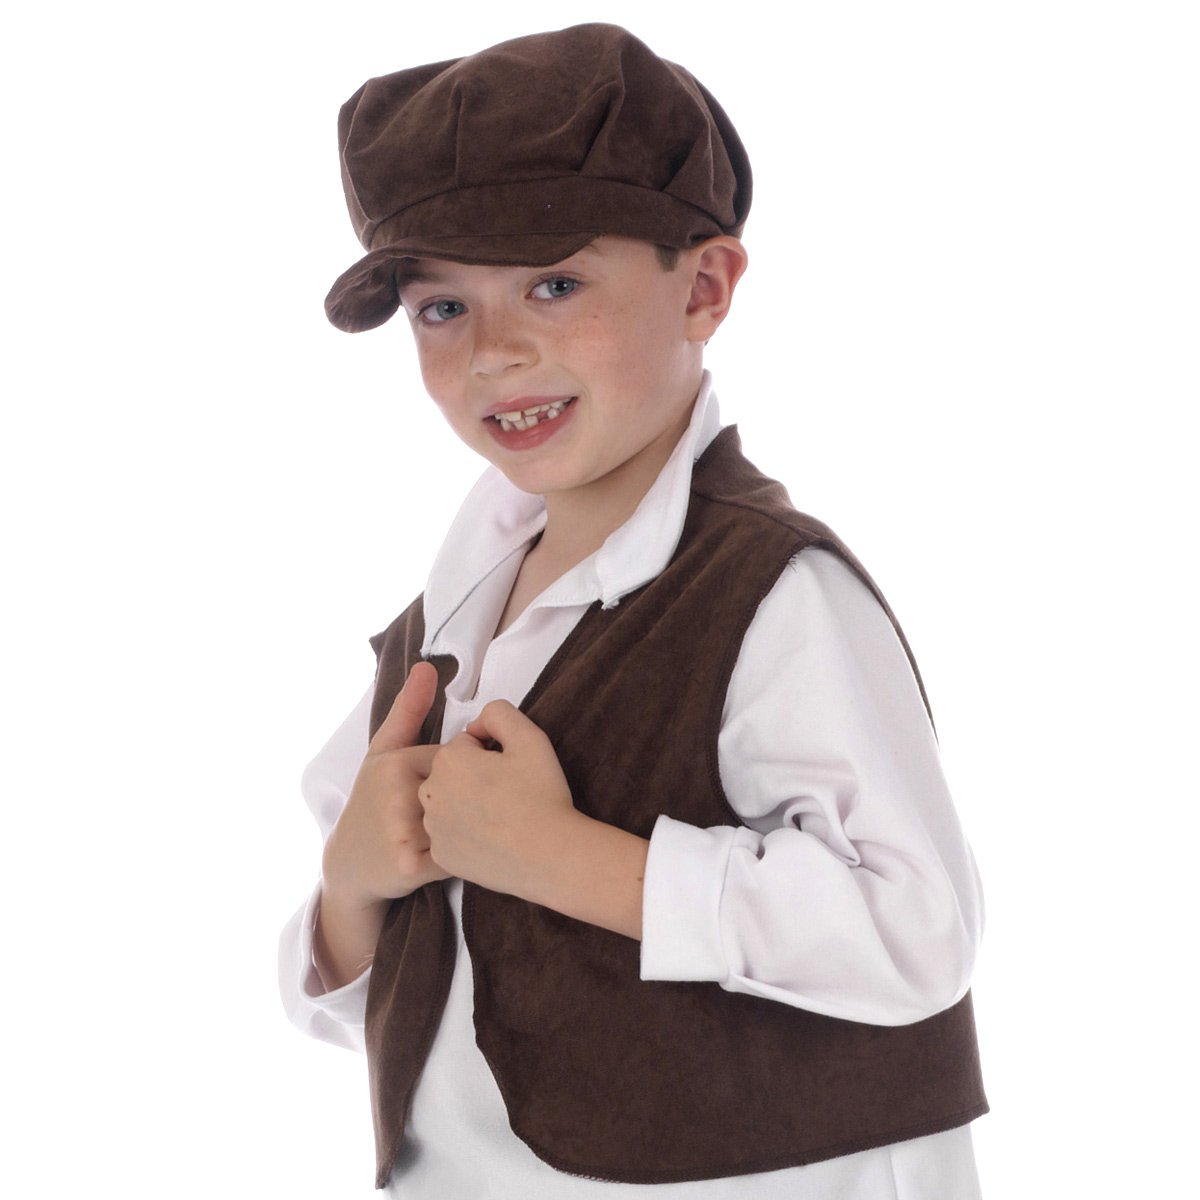 Steampunk Kids Costumes | Girl, Boy, Baby, Toddler Brown Flat Cap & Waistcoat for kids | One size fits all 3-9 years £8.50 AT vintagedancer.com